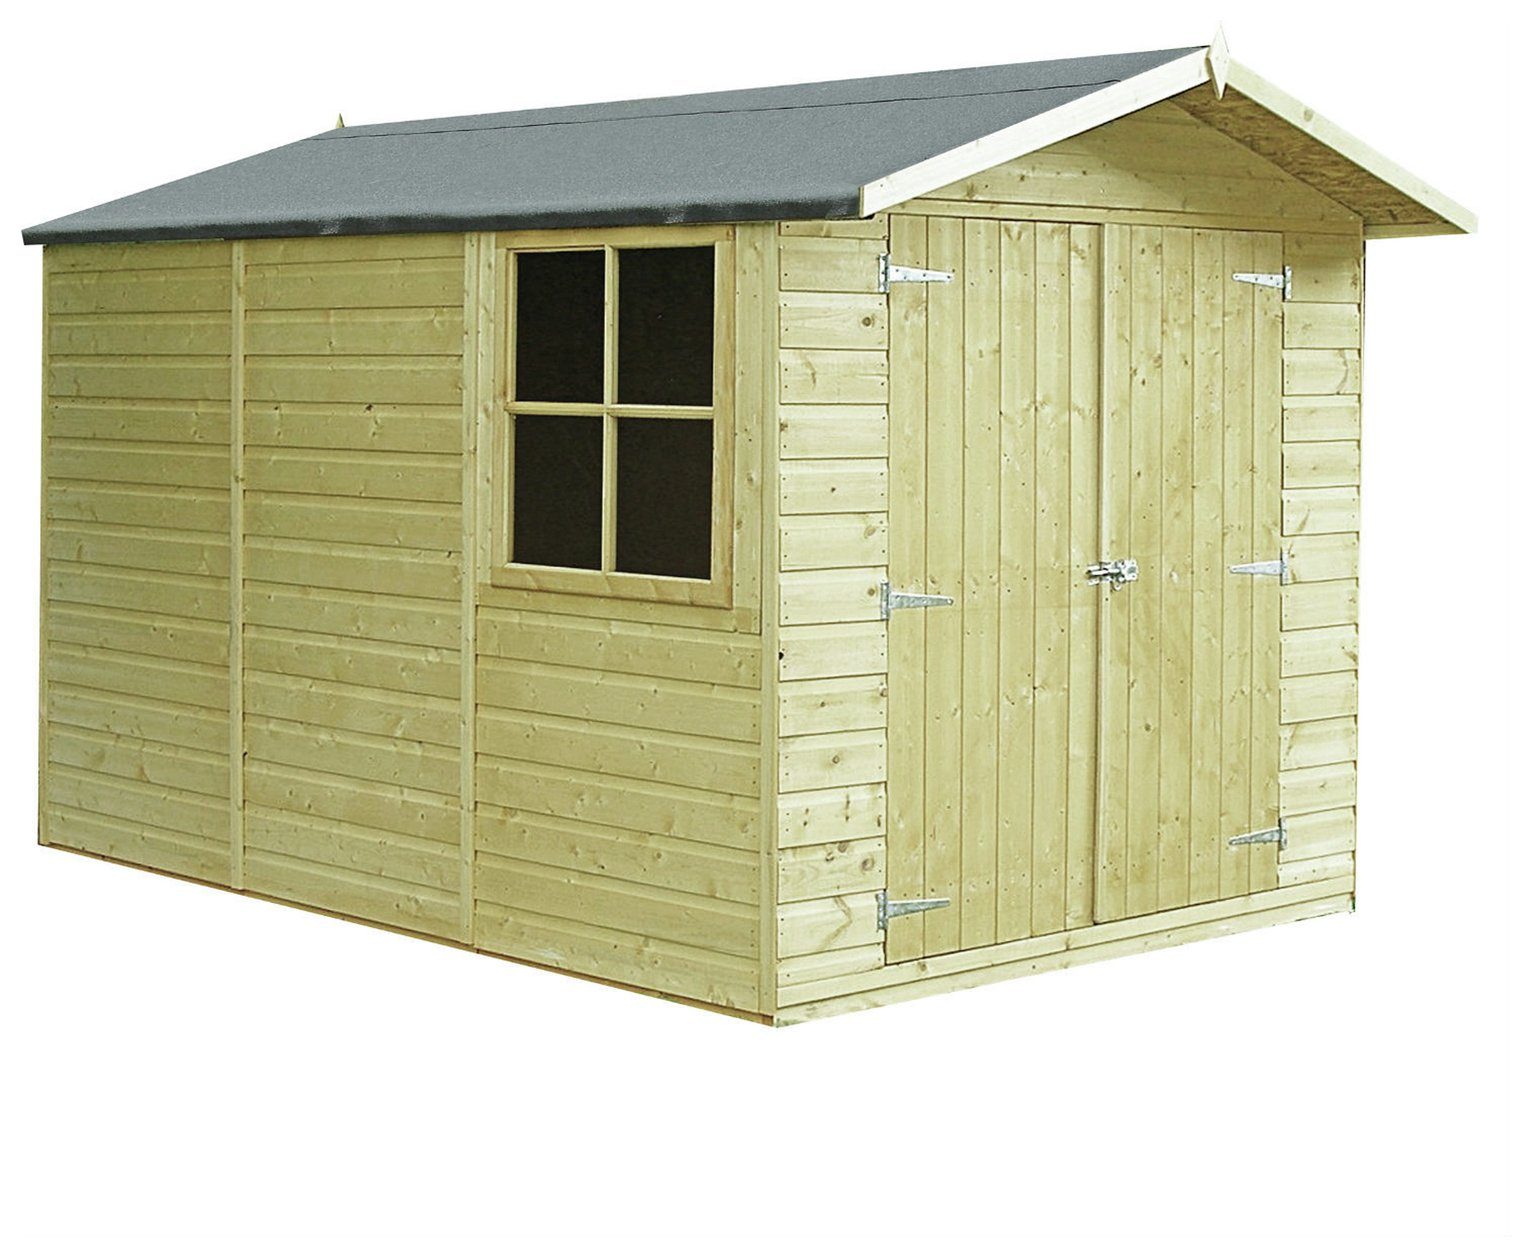 Image of Homewood Pressure Treated Apex Shed 10 x 7ft